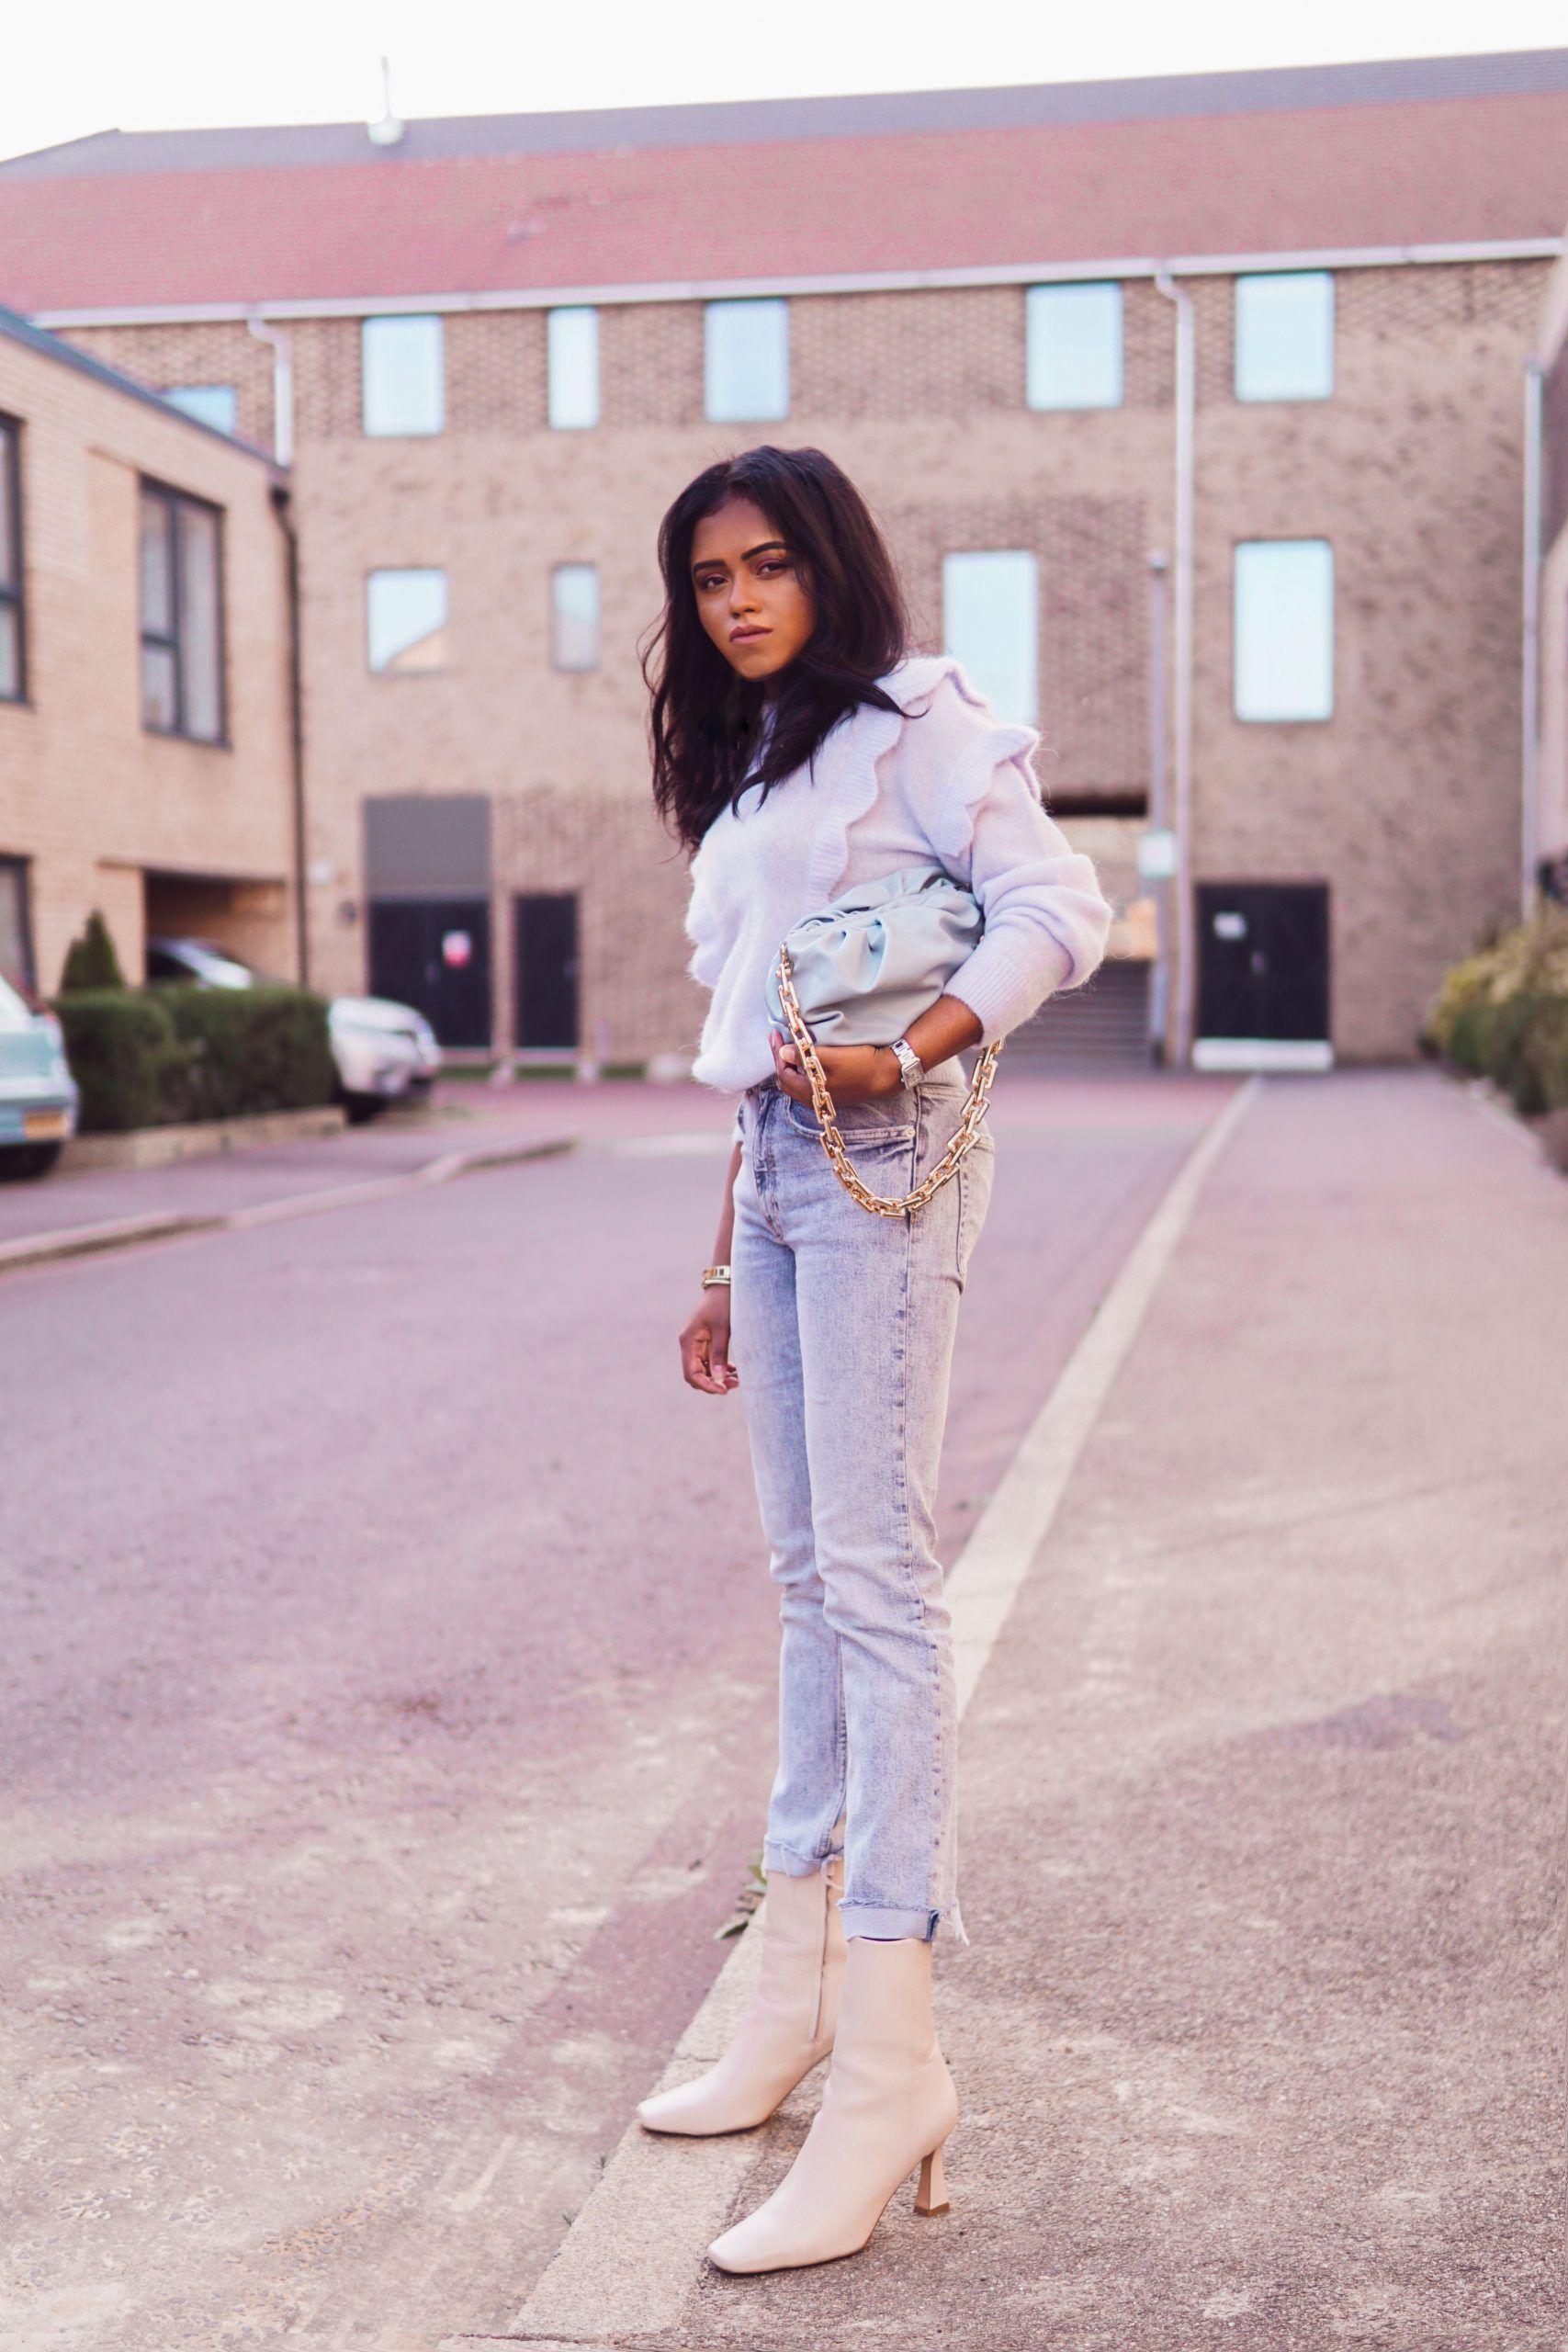 How to rock white boots this Spring - 1 | Sachini